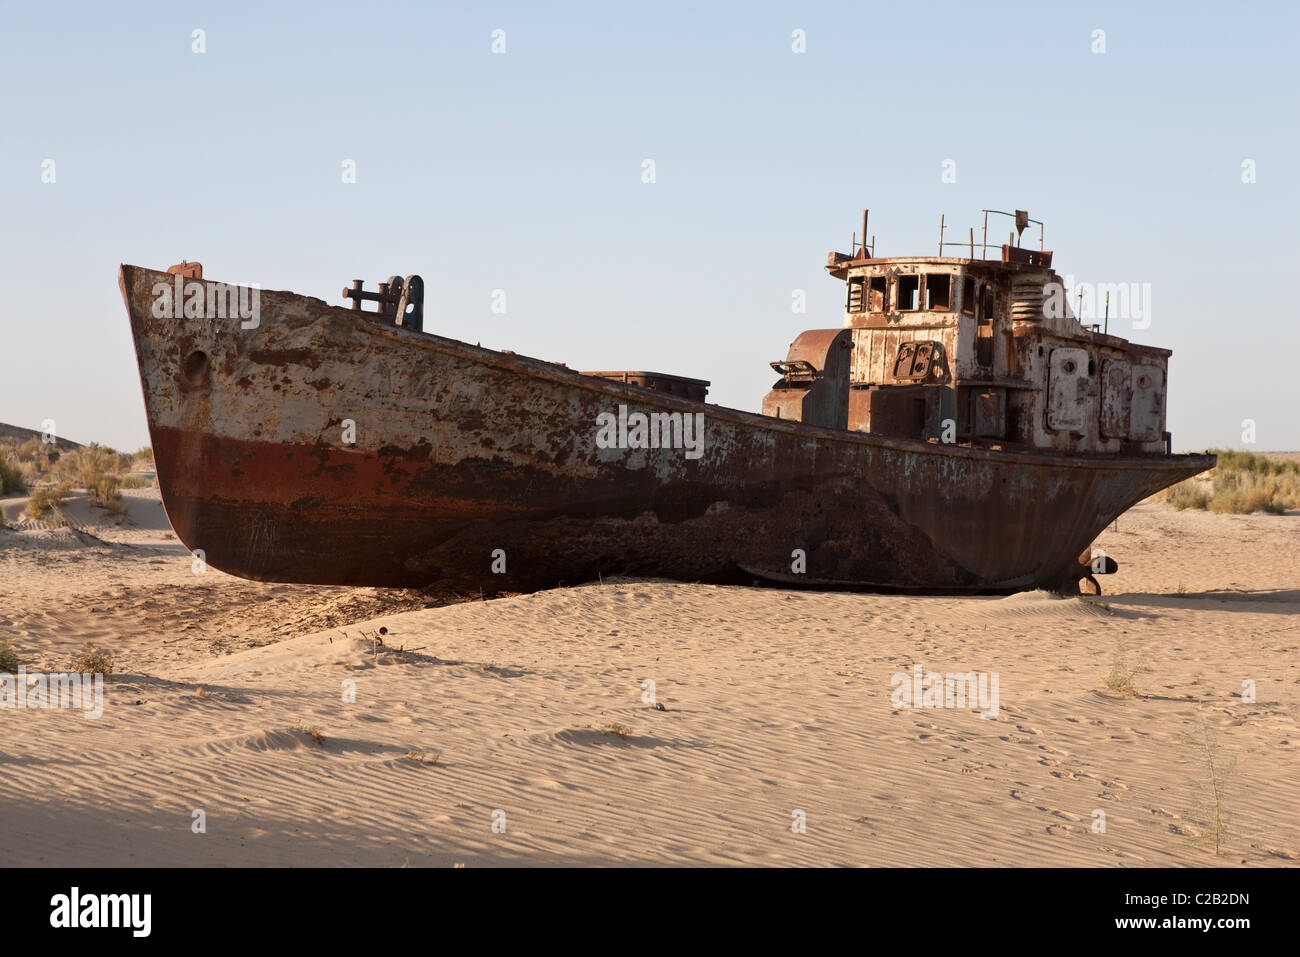 Uzbekistan, Moynaq, rusty boat beached in the desert which used to be the Aral Sea - Stock Image